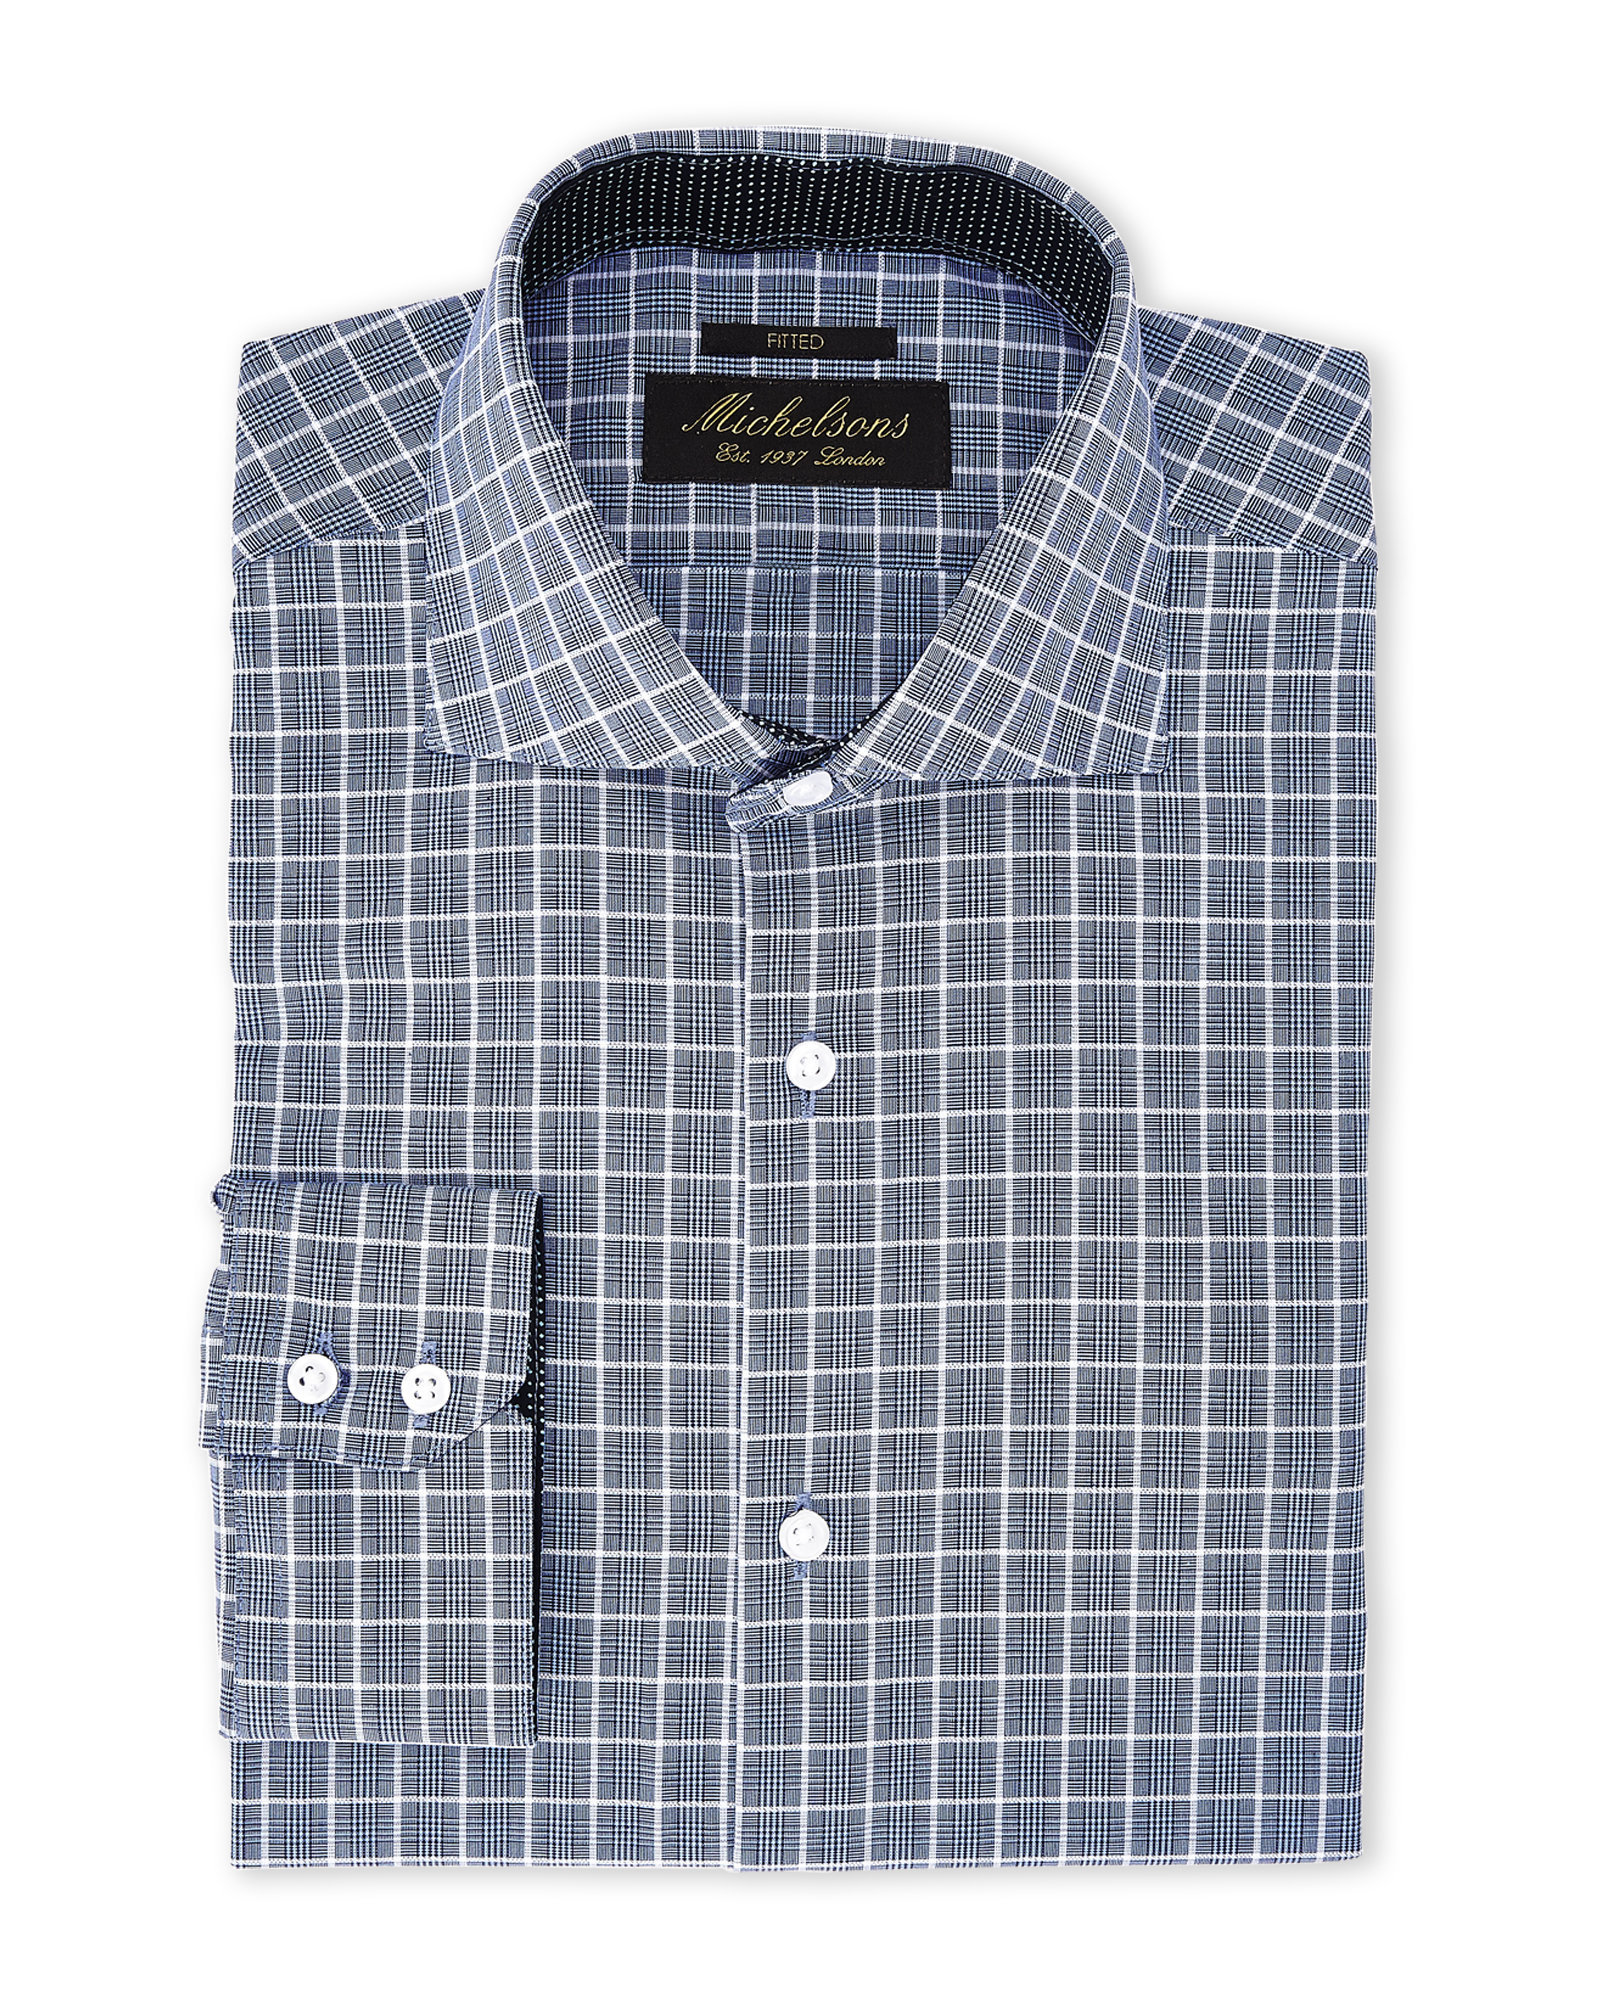 Michelsons of london blue navy plaid fitted dress shirt for Navy blue checkered dress shirt